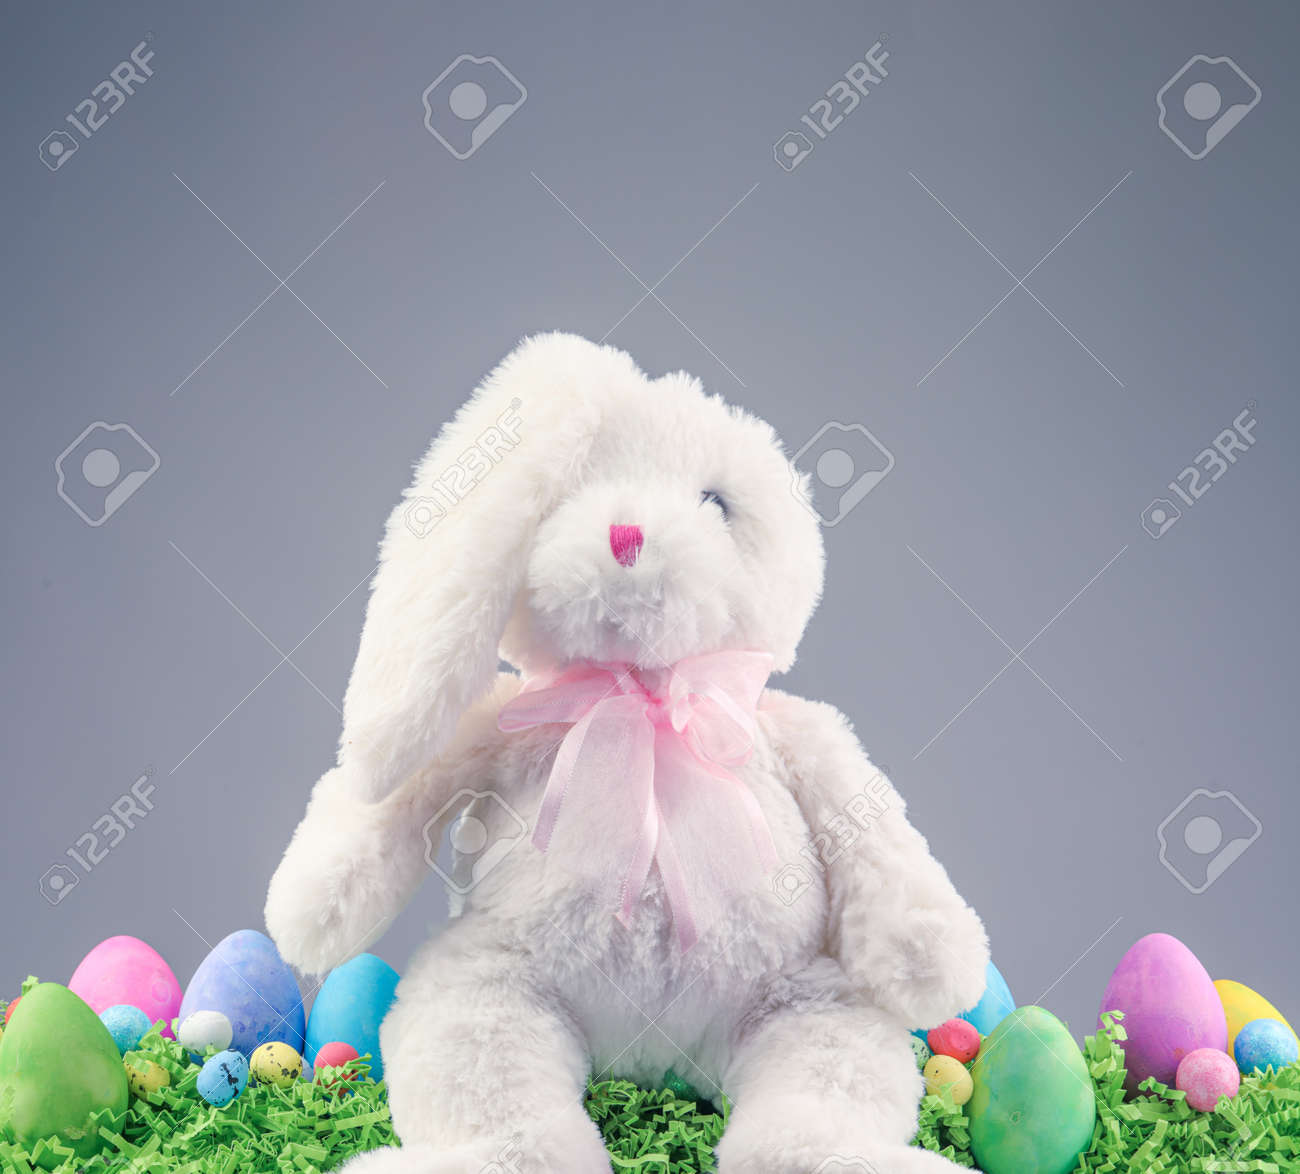 Stuffed animal Easter Bunny surrounded with painted Easter eggs and colorful decorations. - 165169623